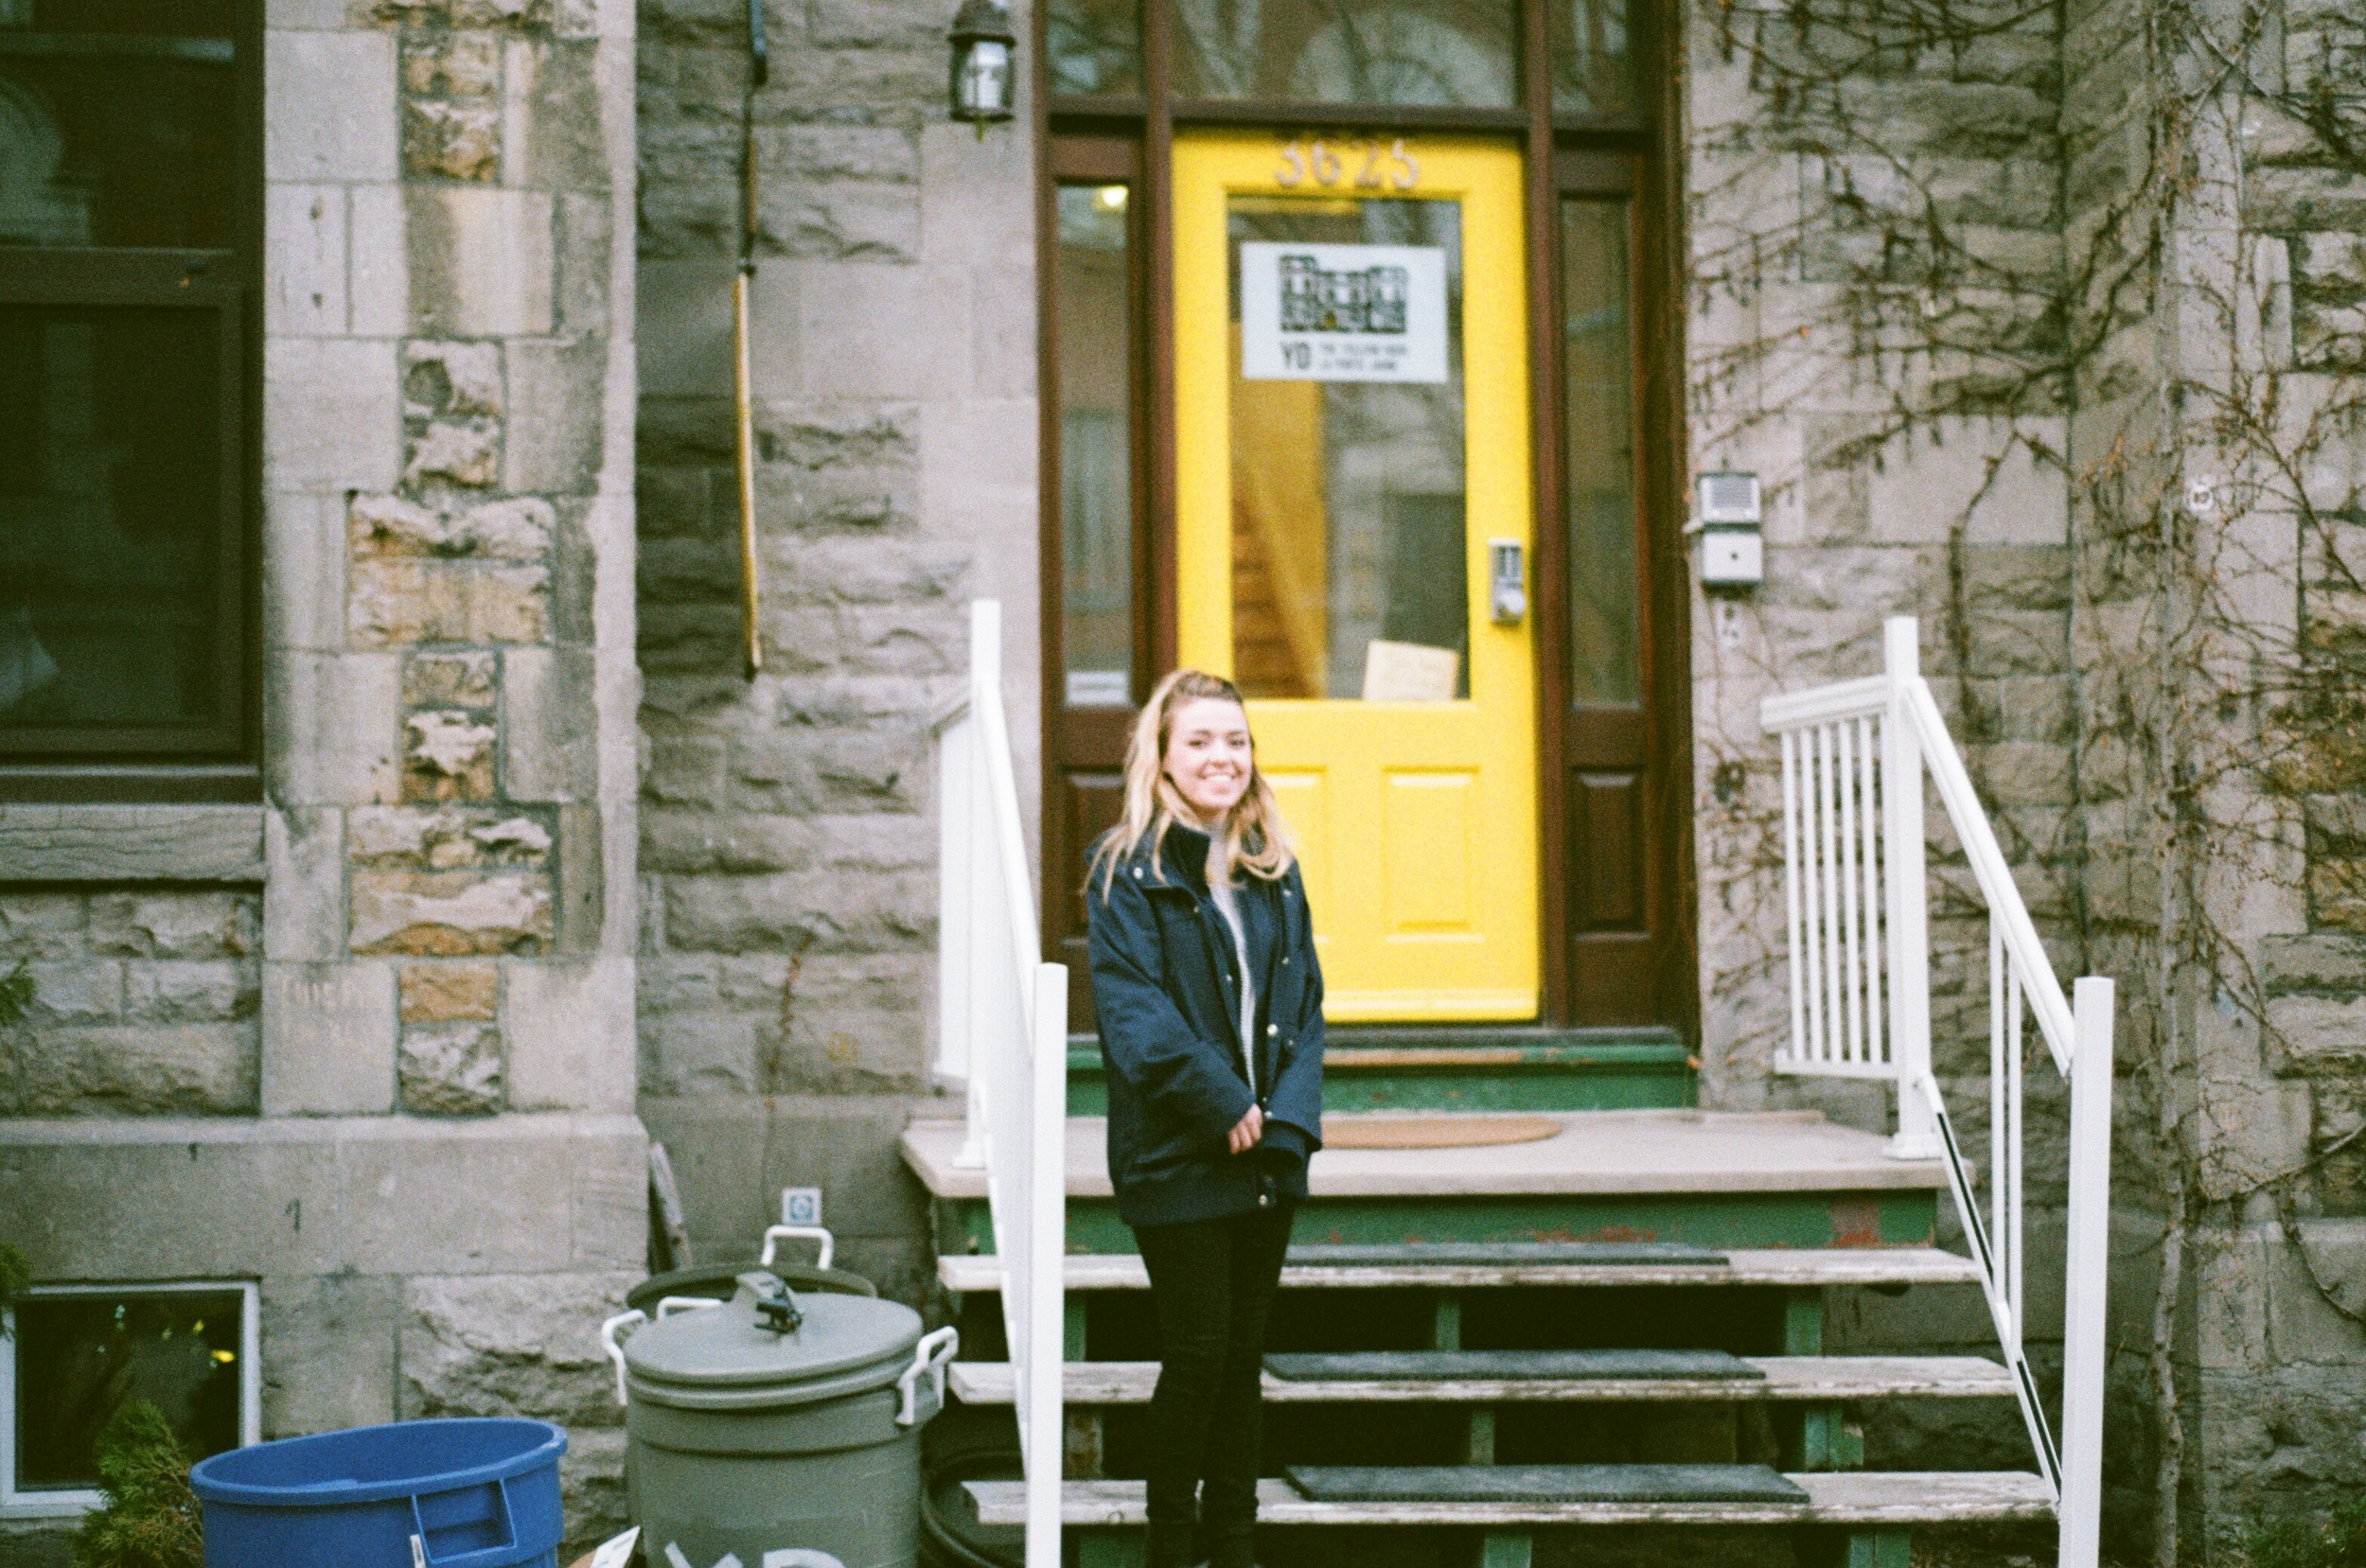 The Yellow Door/La Porte Jaune, Montreal, QC